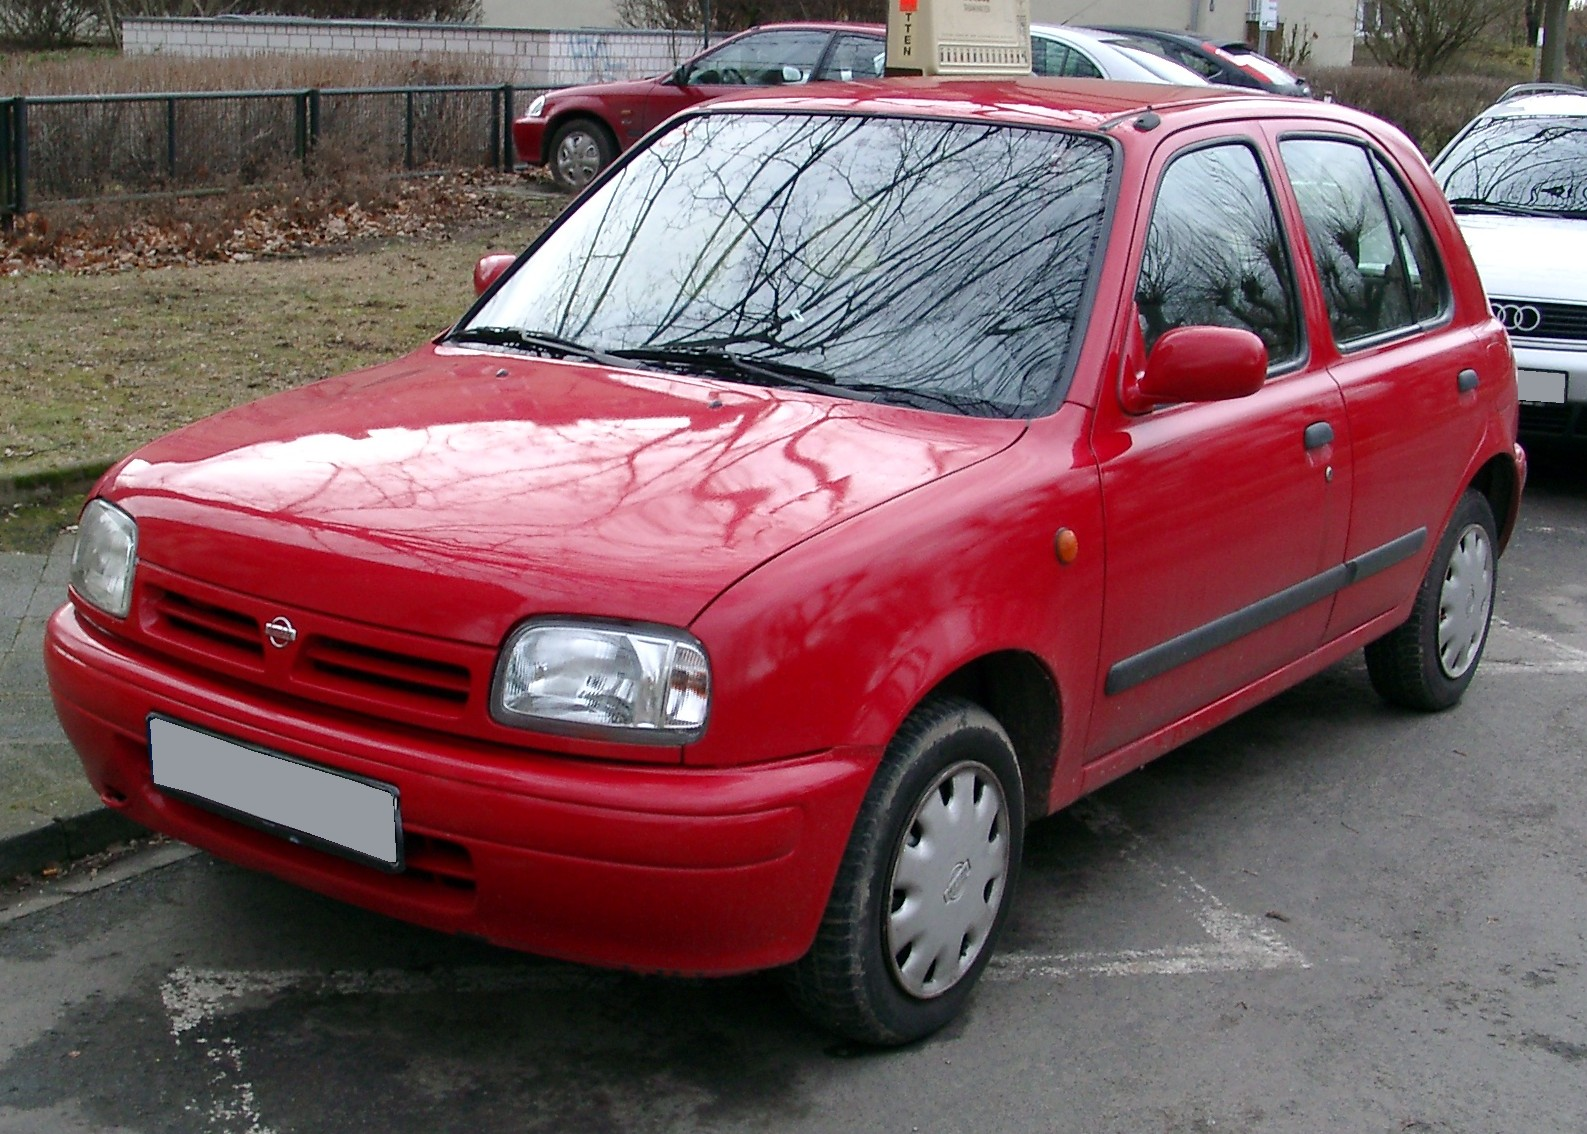 File:Nissan Micra front 20080116.jpg